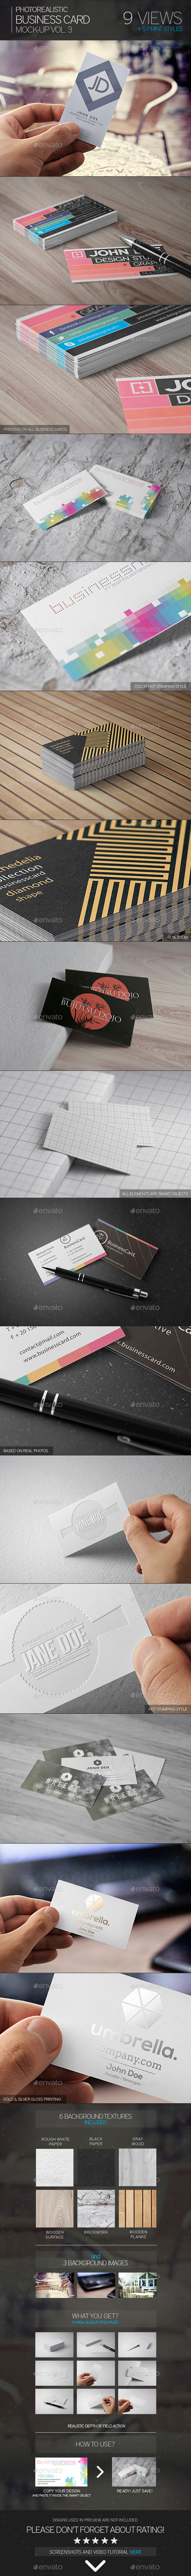 GraphicRiver Photorealistic Business Card Mock-Up Vol.3 9121143